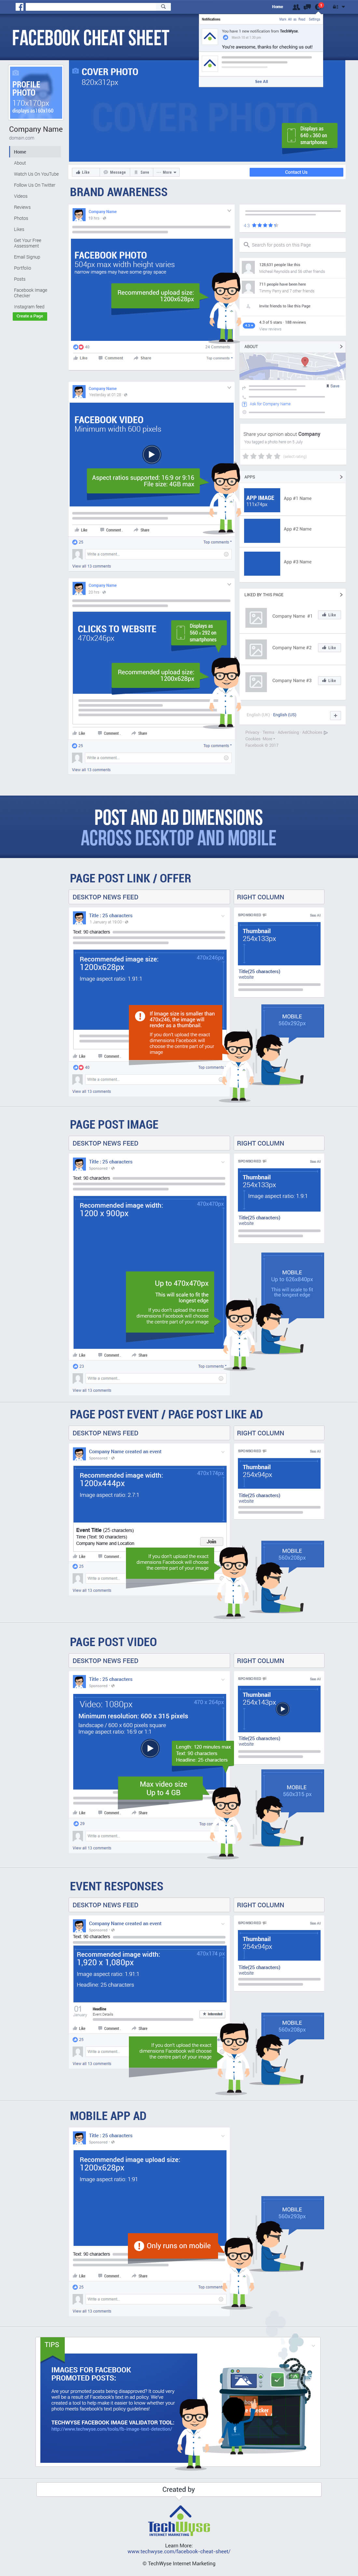 facebook-image-sizes-and-dimensions-2017-infographic